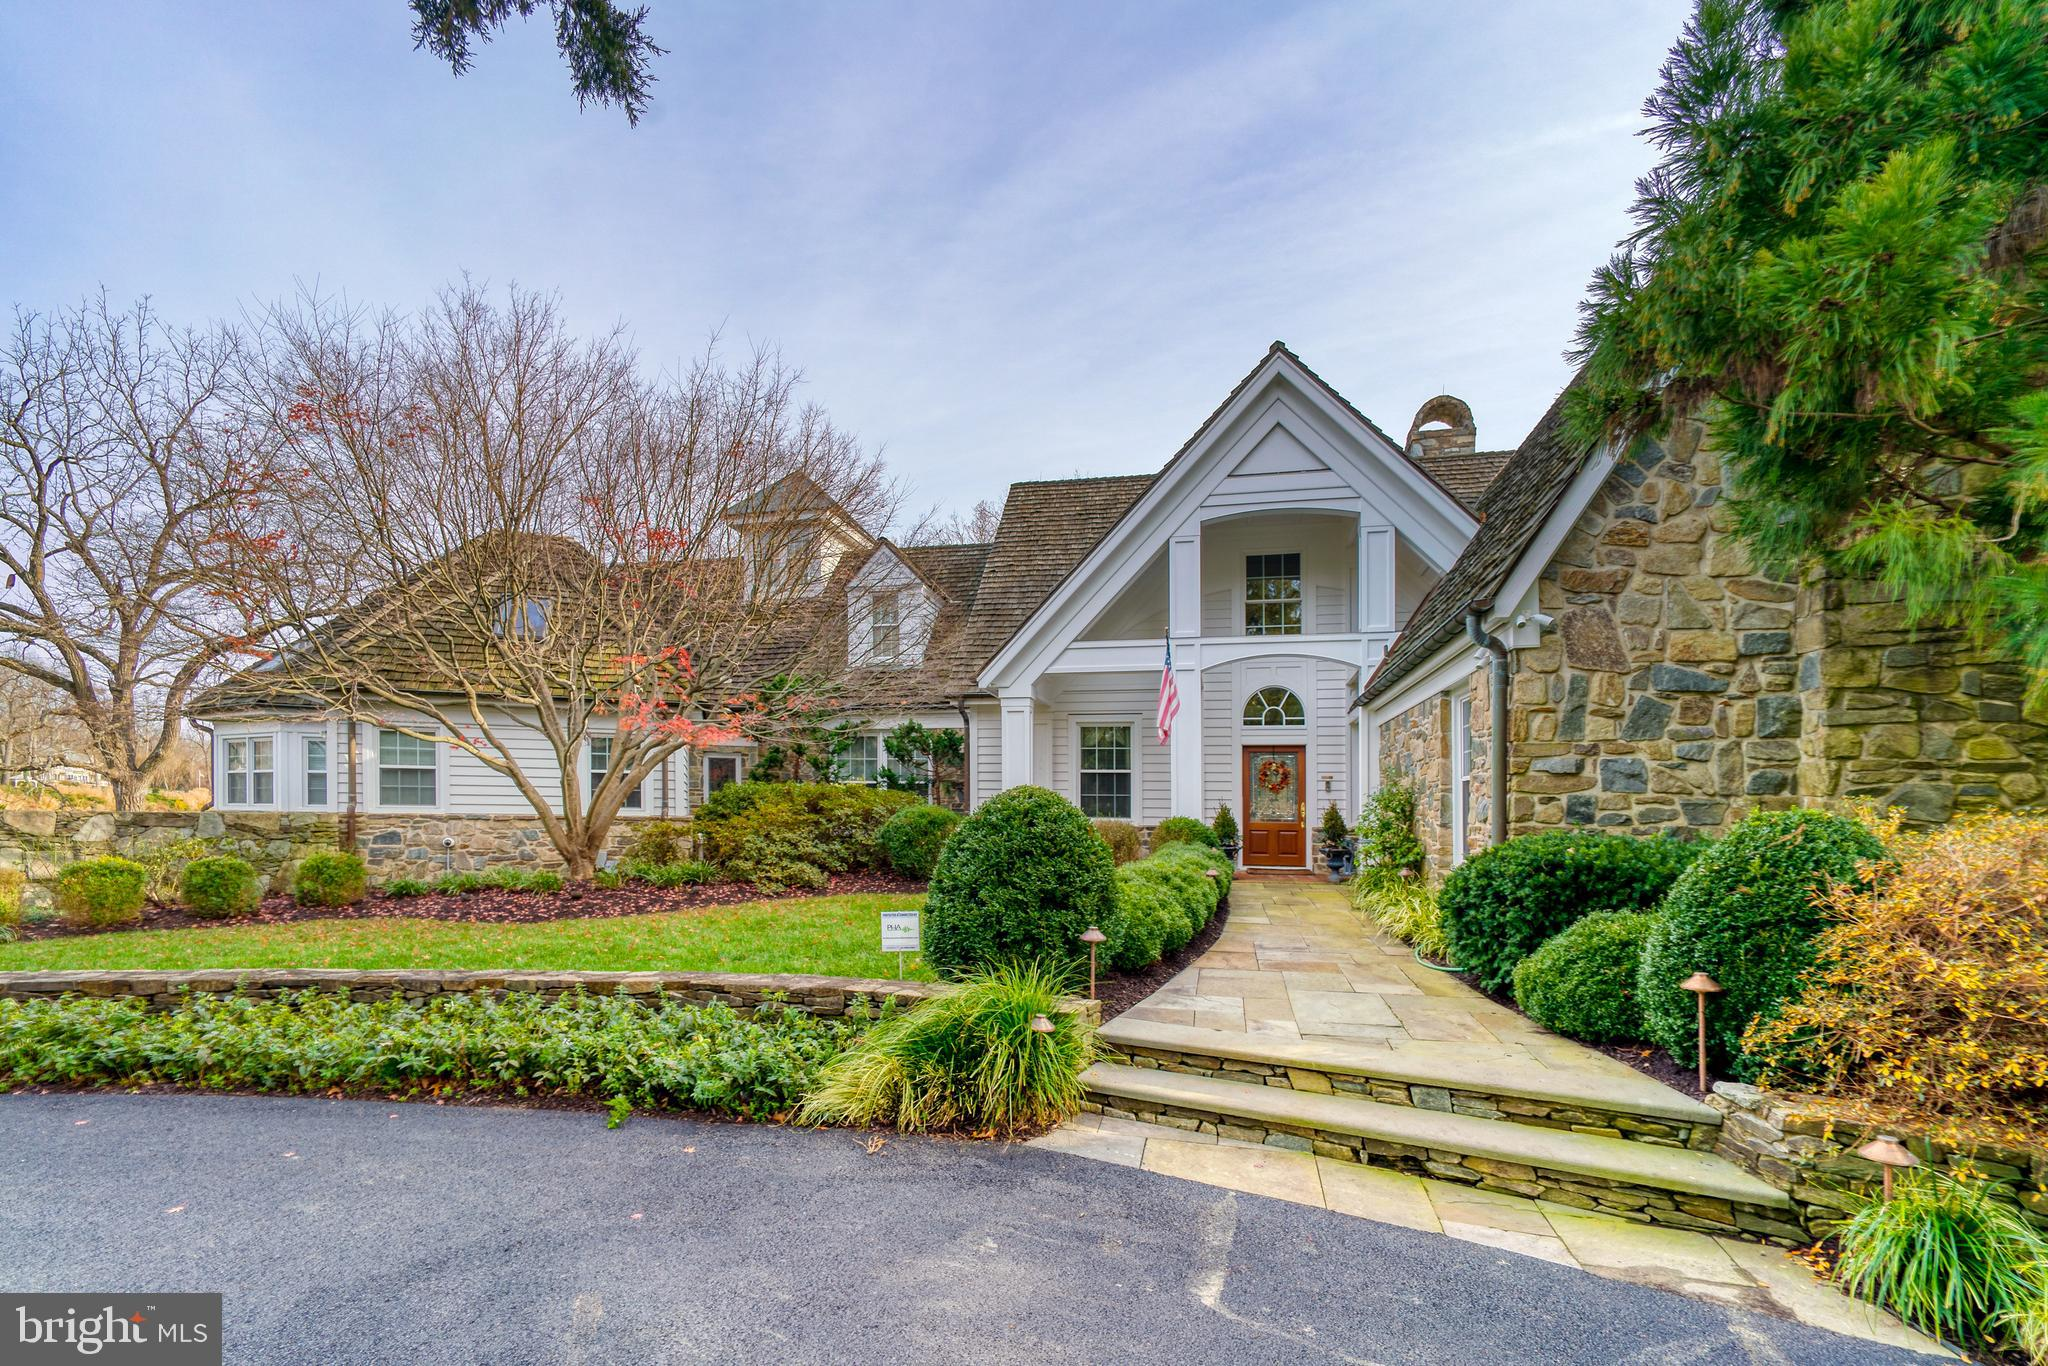 945 Melvin Rd, Annapolis, MD, 21403